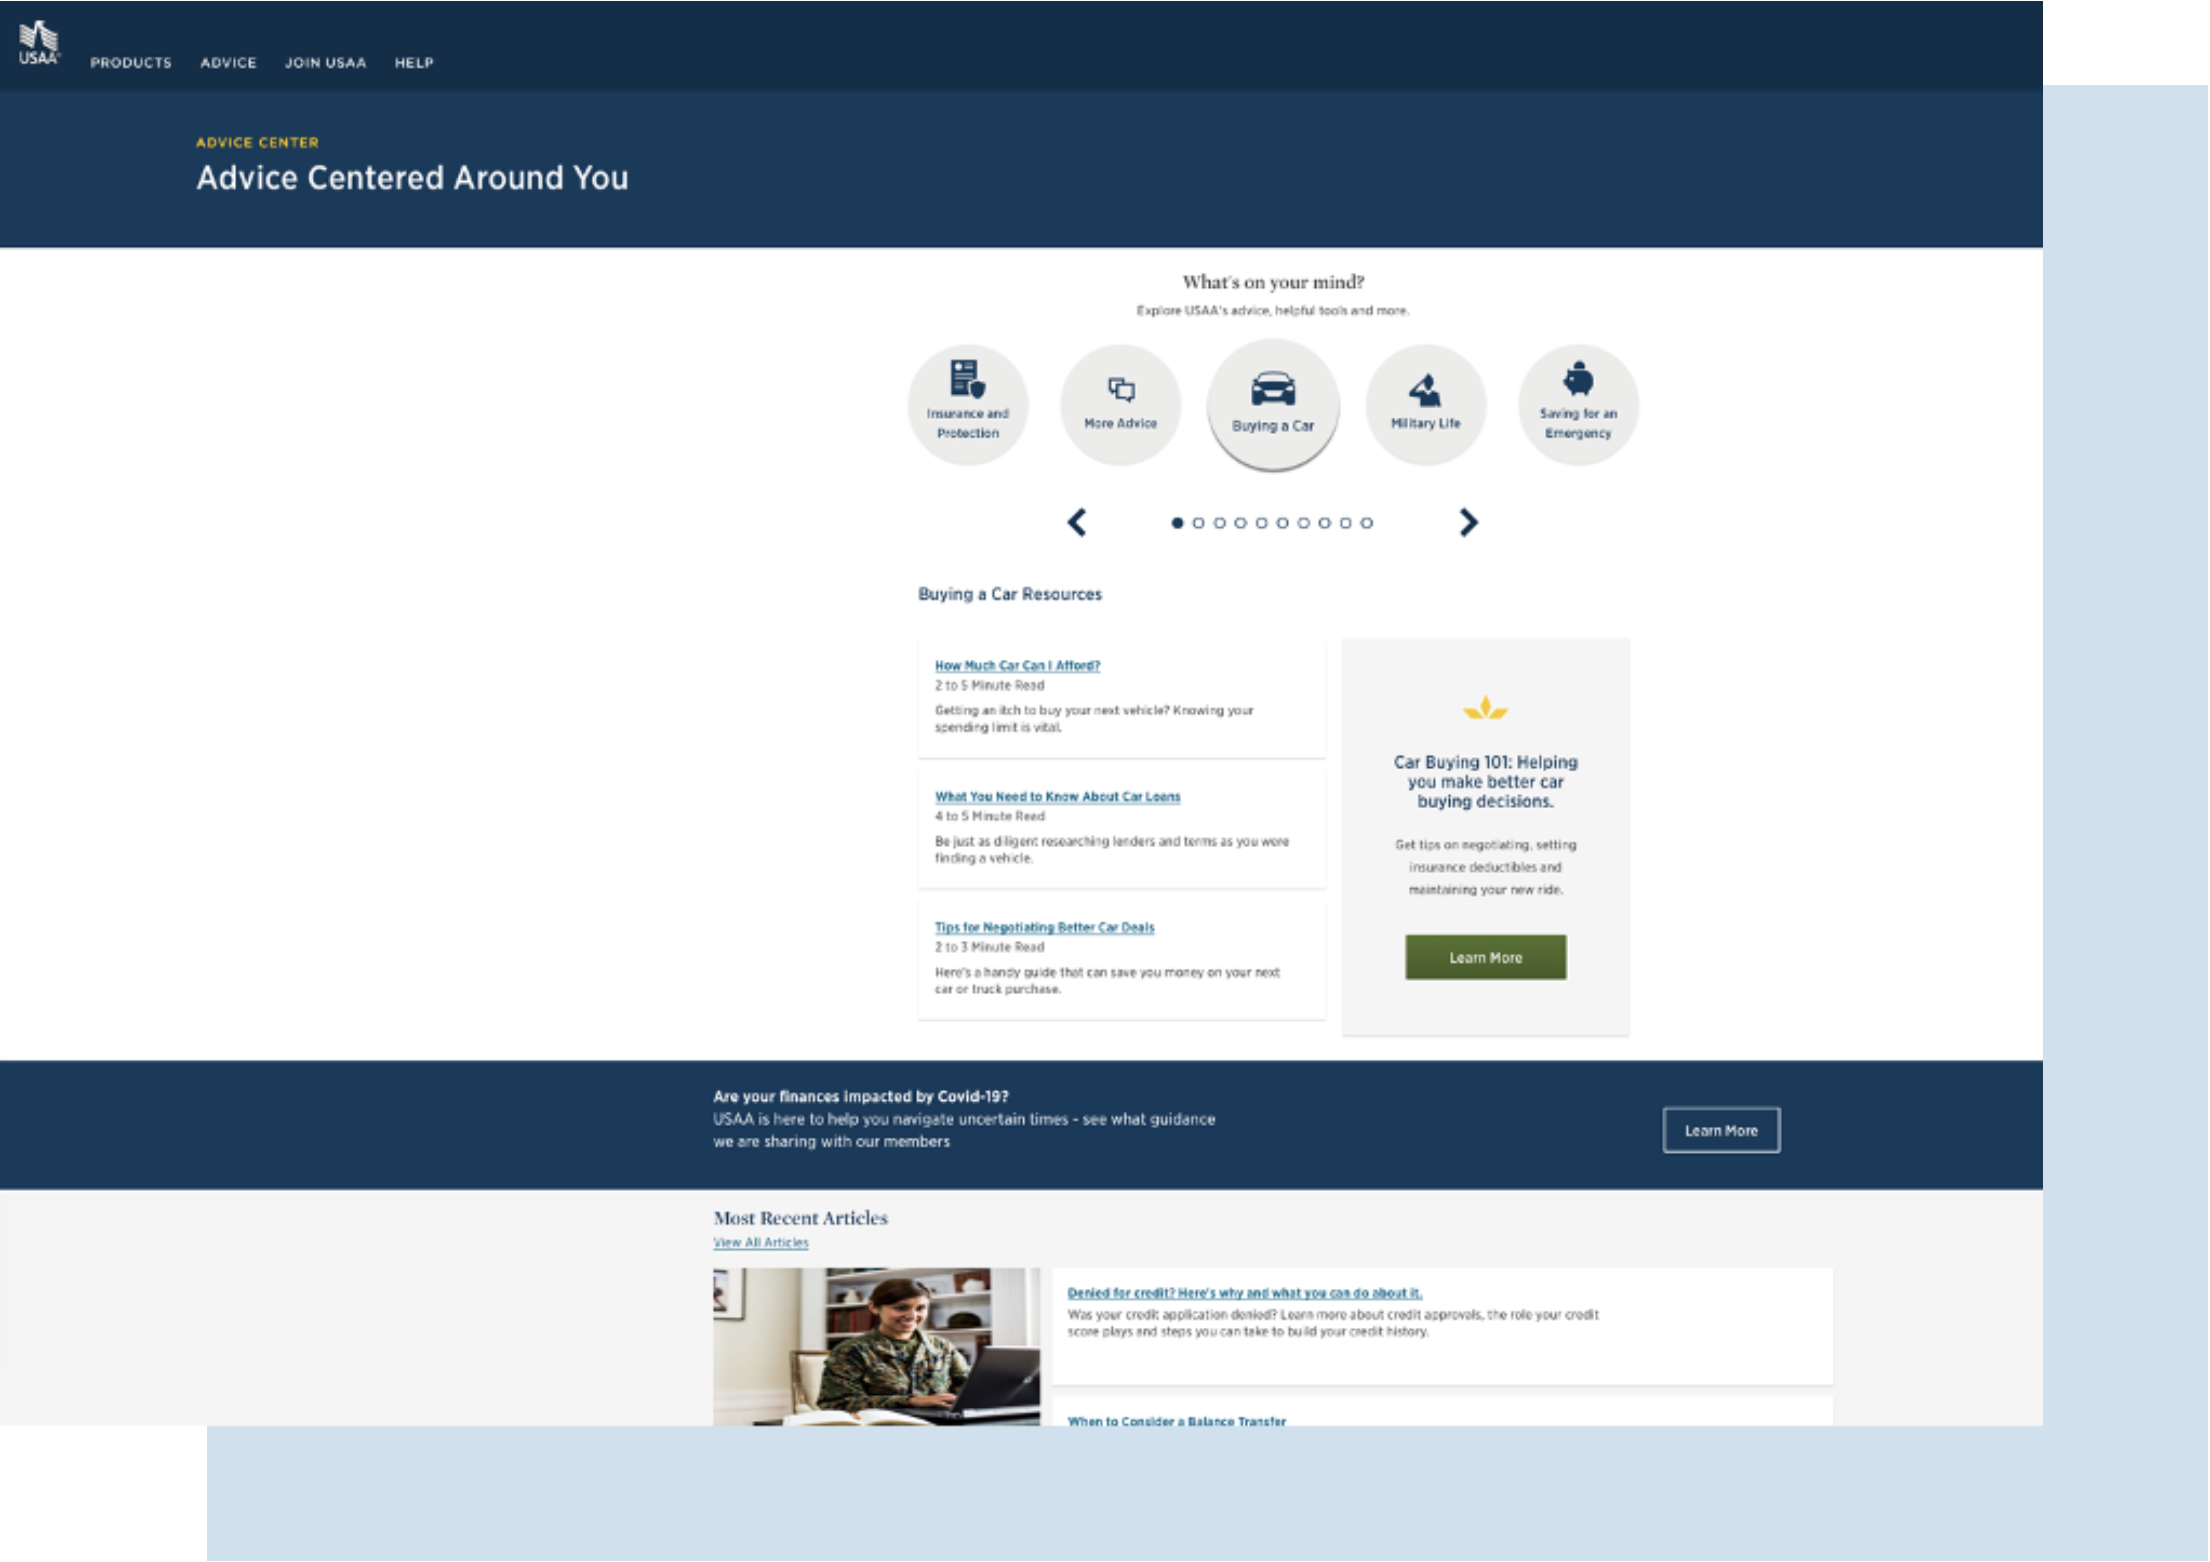 What made USAA a Customer Experience champion? — C/DXE